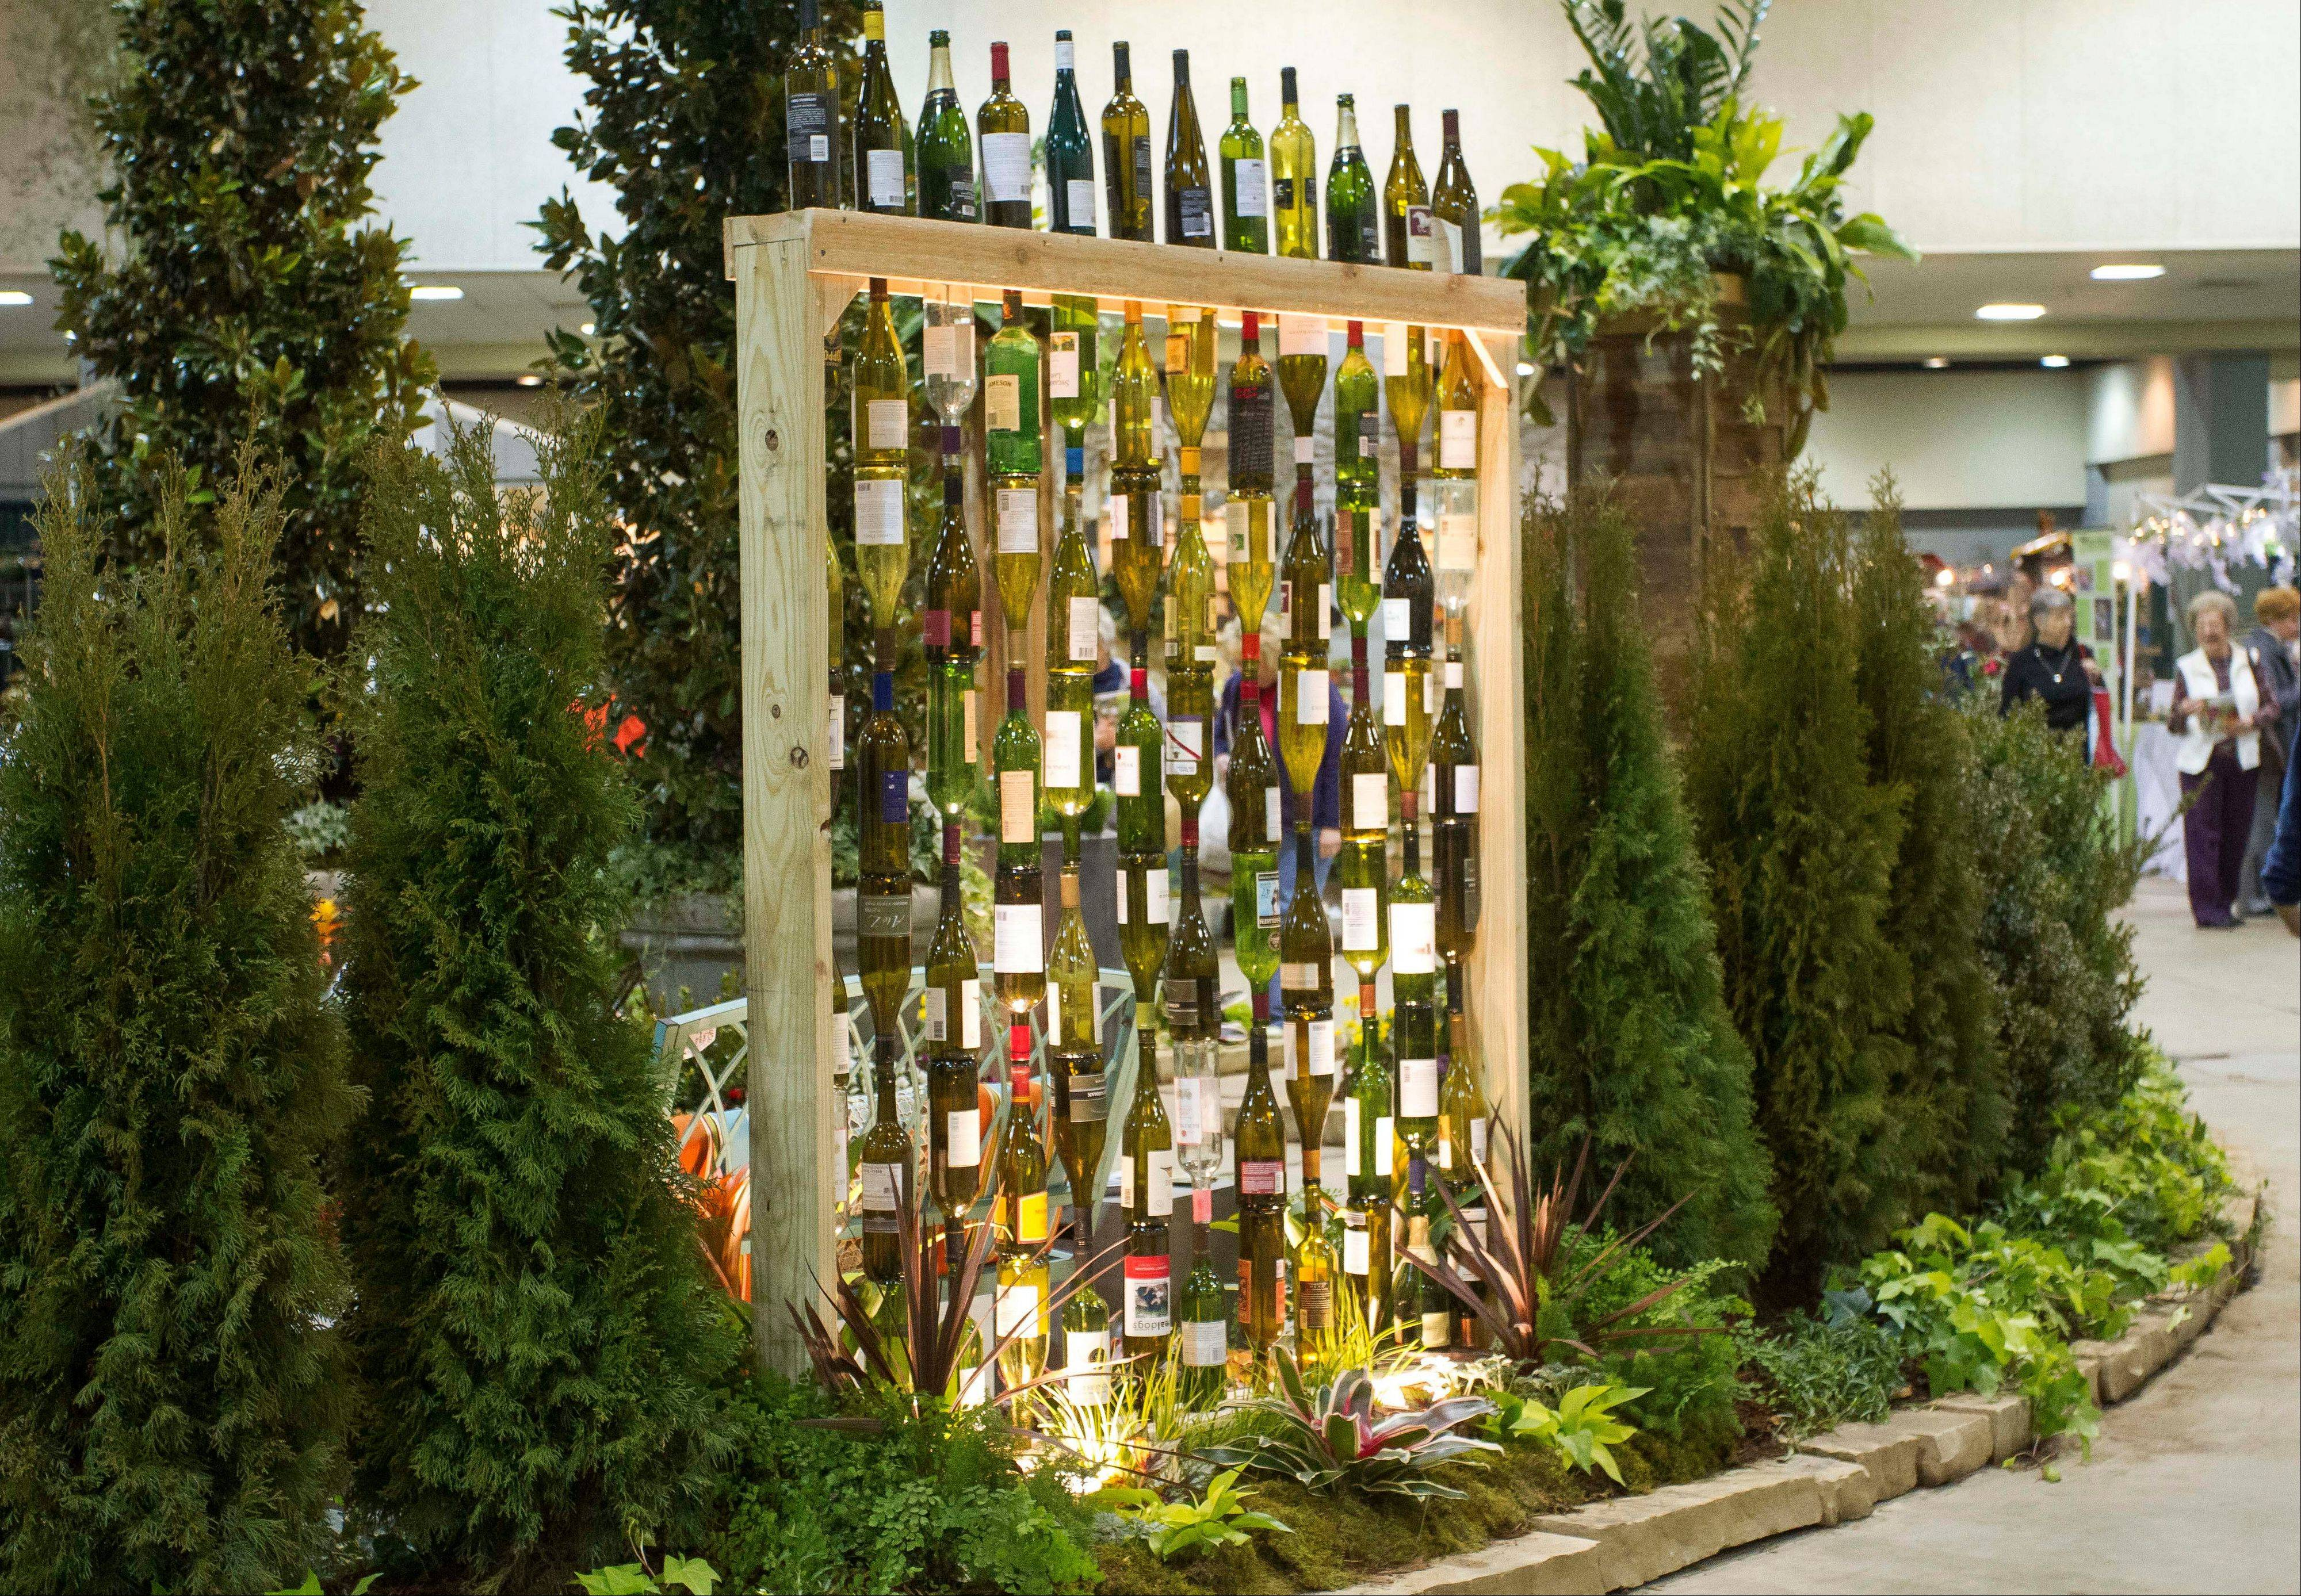 "In this publicity photo provided by Chris H. Olsen, the Landscape Designer, Olsen, of Little Rock, Ark., created a decorative wall out of empty wine bottles by threading them onto metal poles inserted into a wooden frame. Olsen shares outdoor decorating ideas in his book ""Chris H. Olsen's Five Seasons"" (Leisure Arts, 2011)."